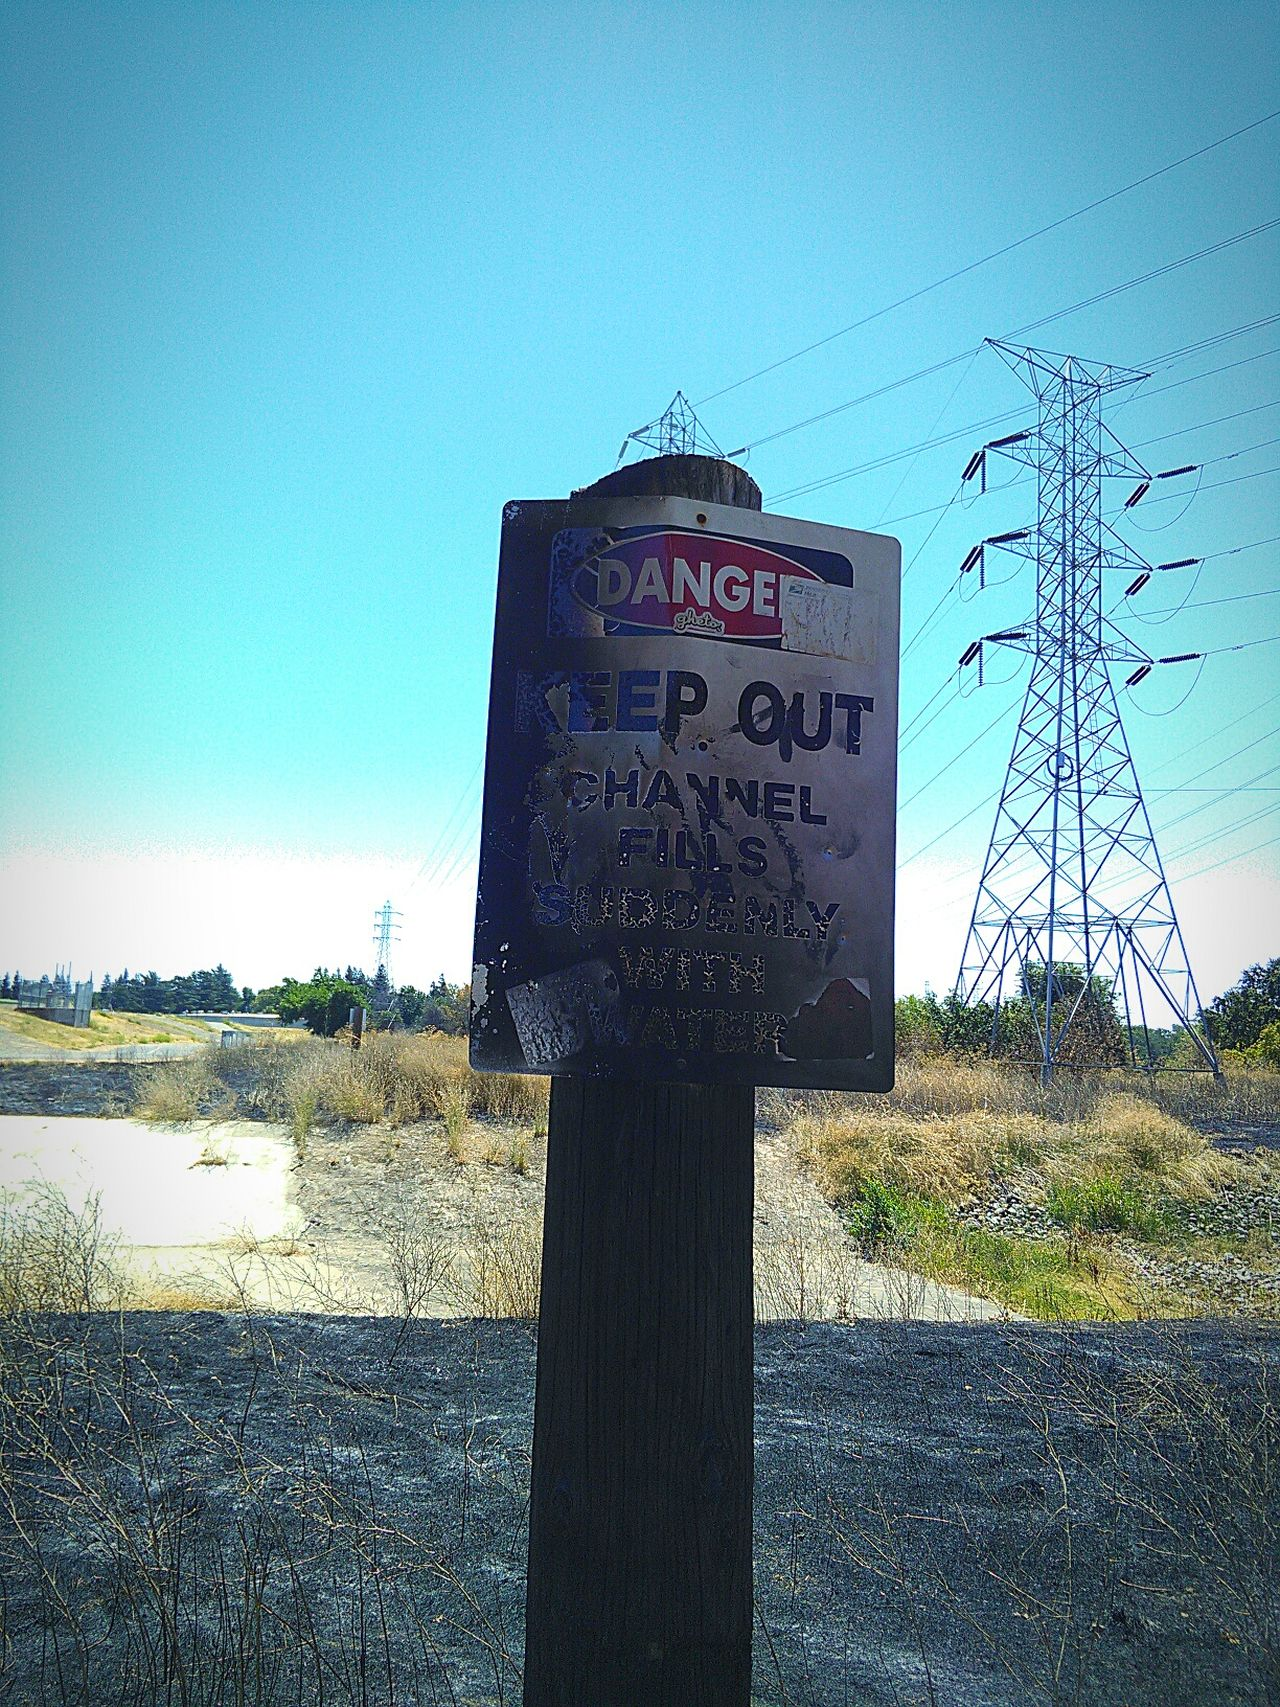 Fire Scorched Sign Electricity Wires And Cables Electricity Pylons Power Lines Against Sky Electricity Pylons High Voltage Electricity Wires Trees And Nature Nature Trail My Photography Trees Trees And Bushes Sacramento, California Trees And Sky Trail Taking Photos ❤ Sign Walking Around